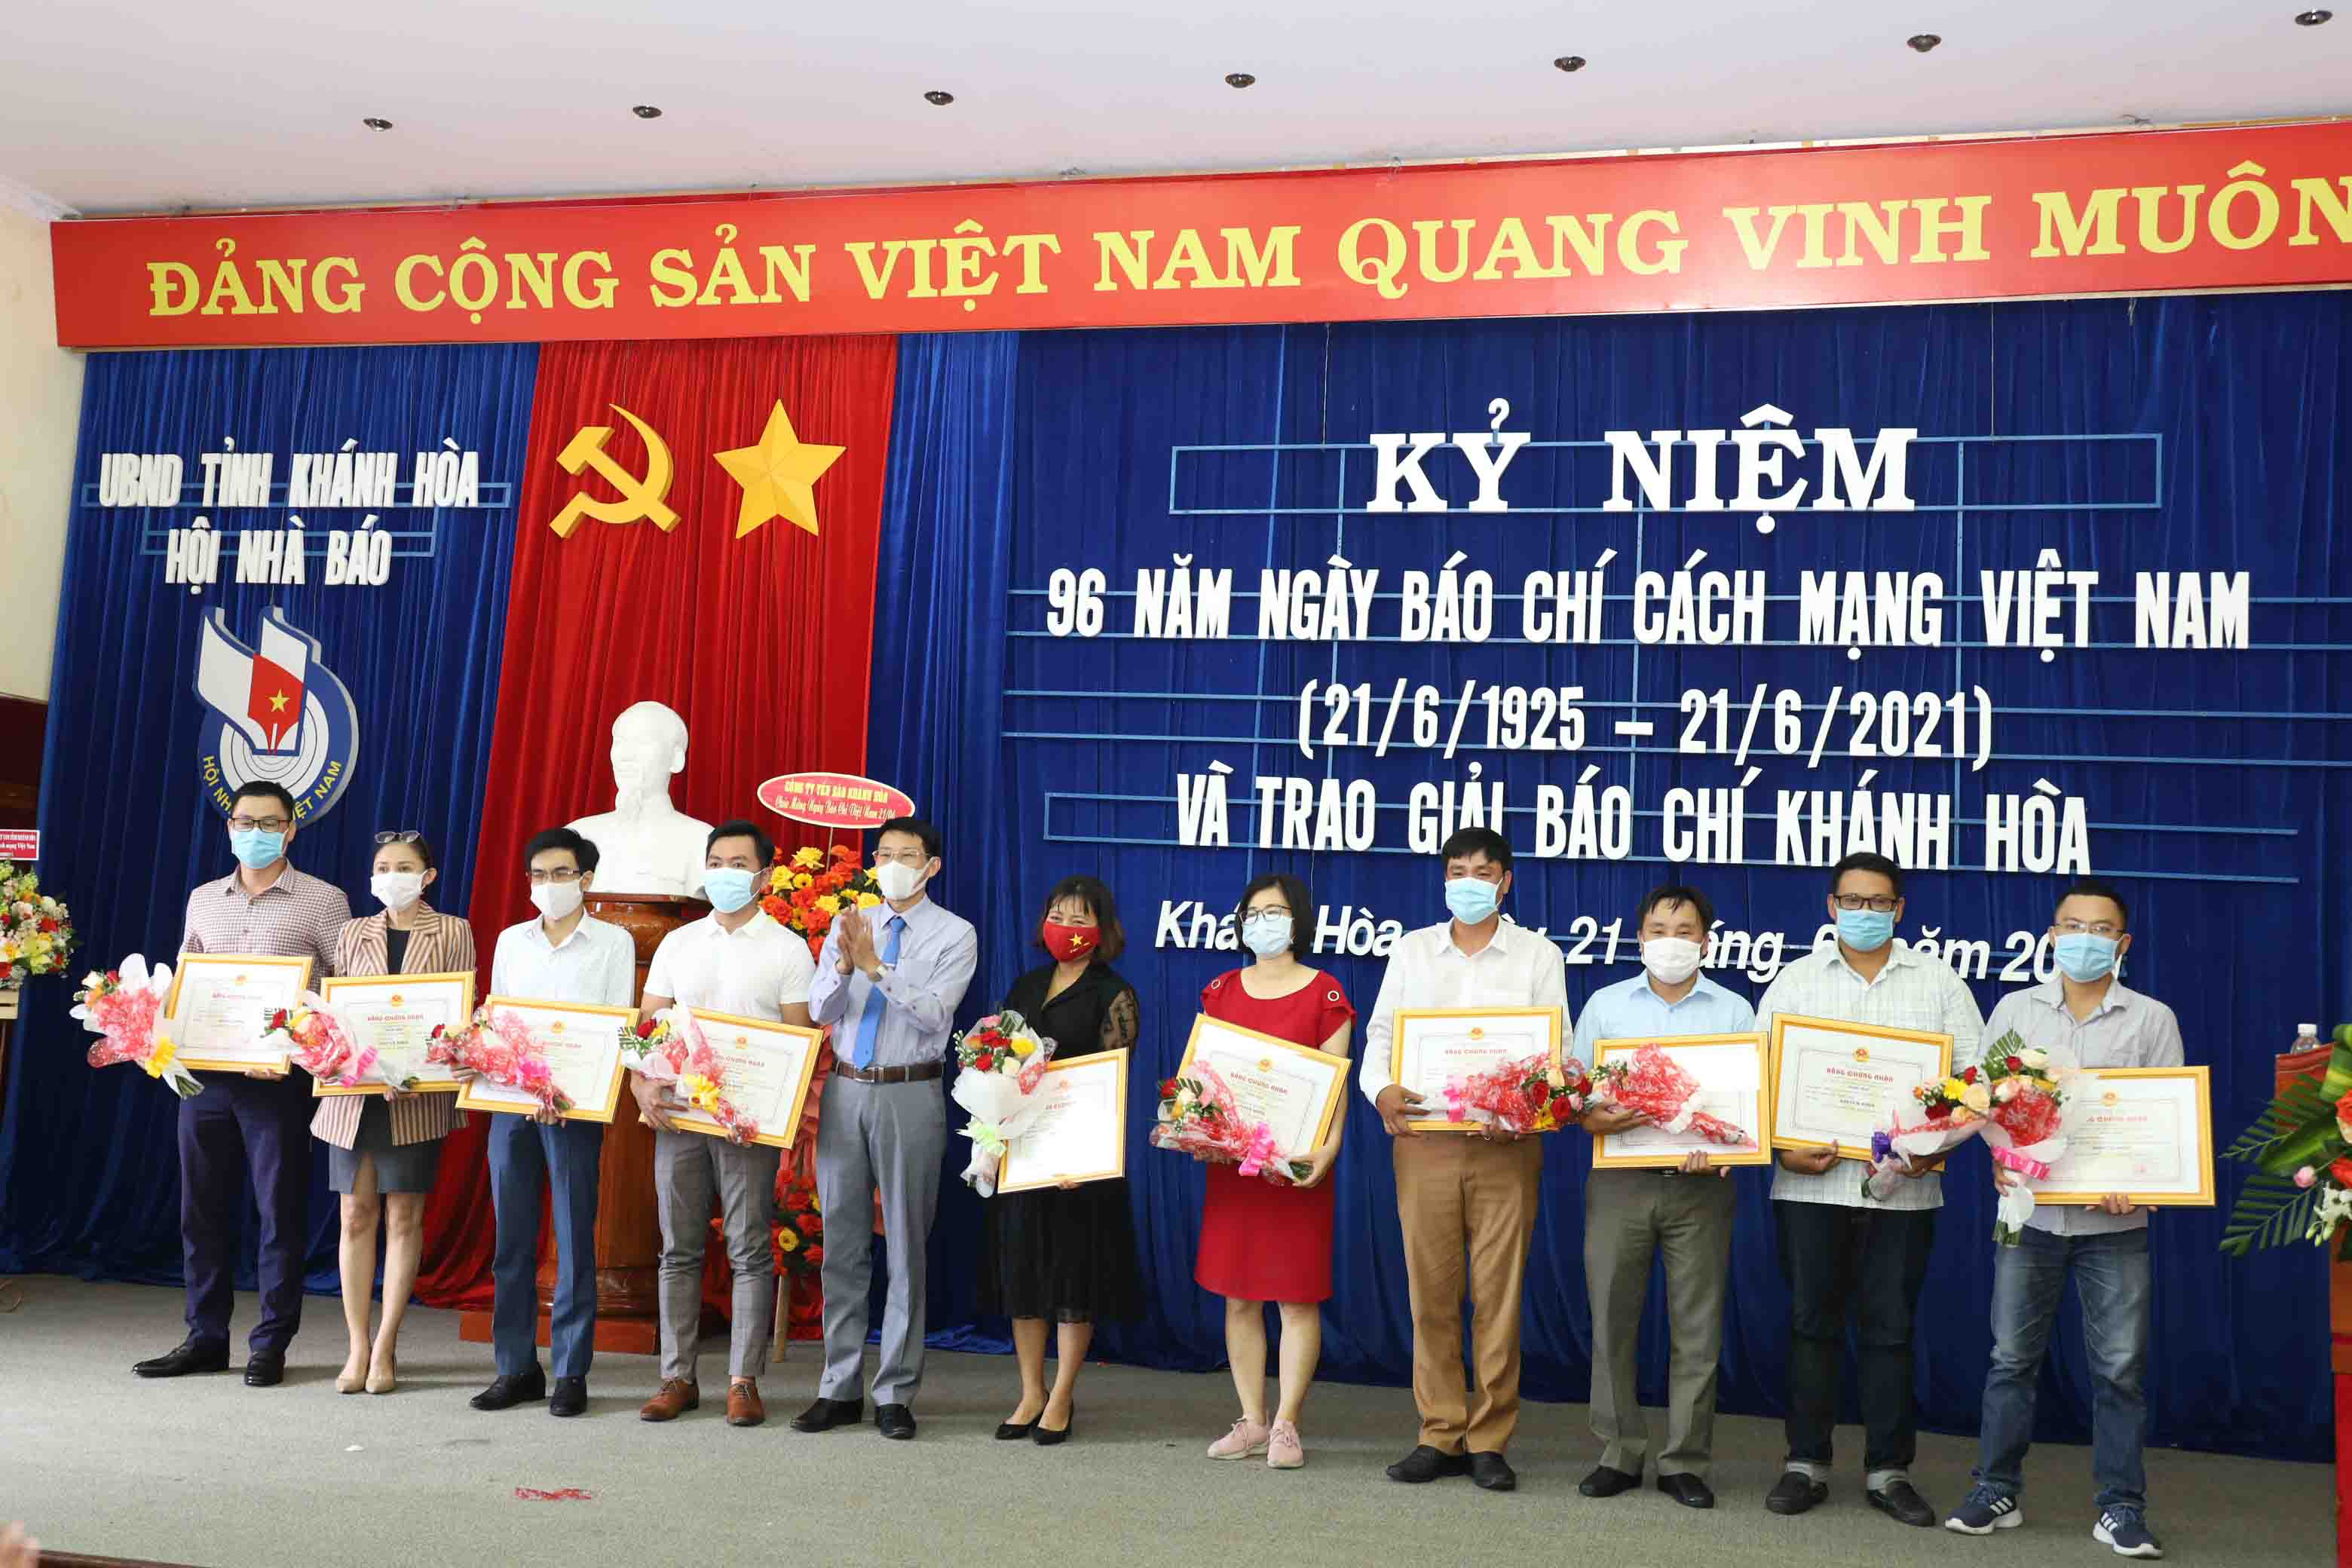 Dinh Van Thieu giving consolation prizes to journalists and groups of journalists